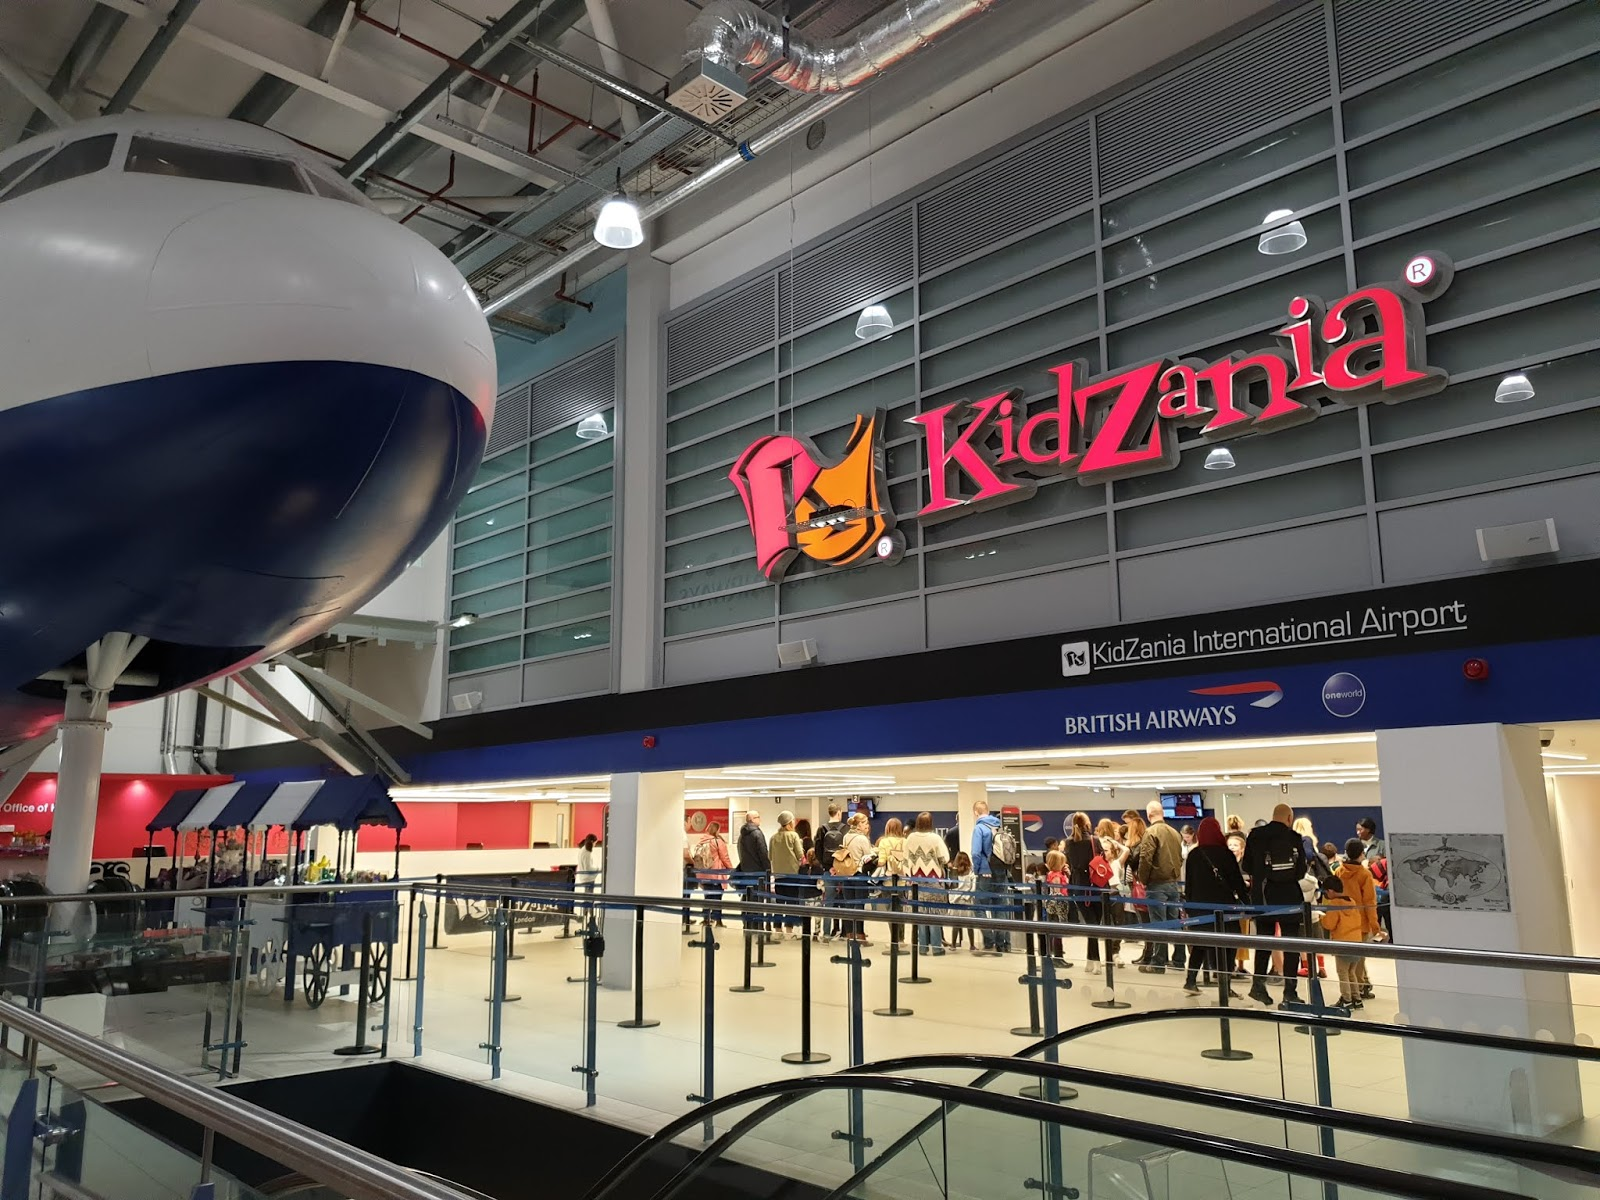 entrance to kidzania